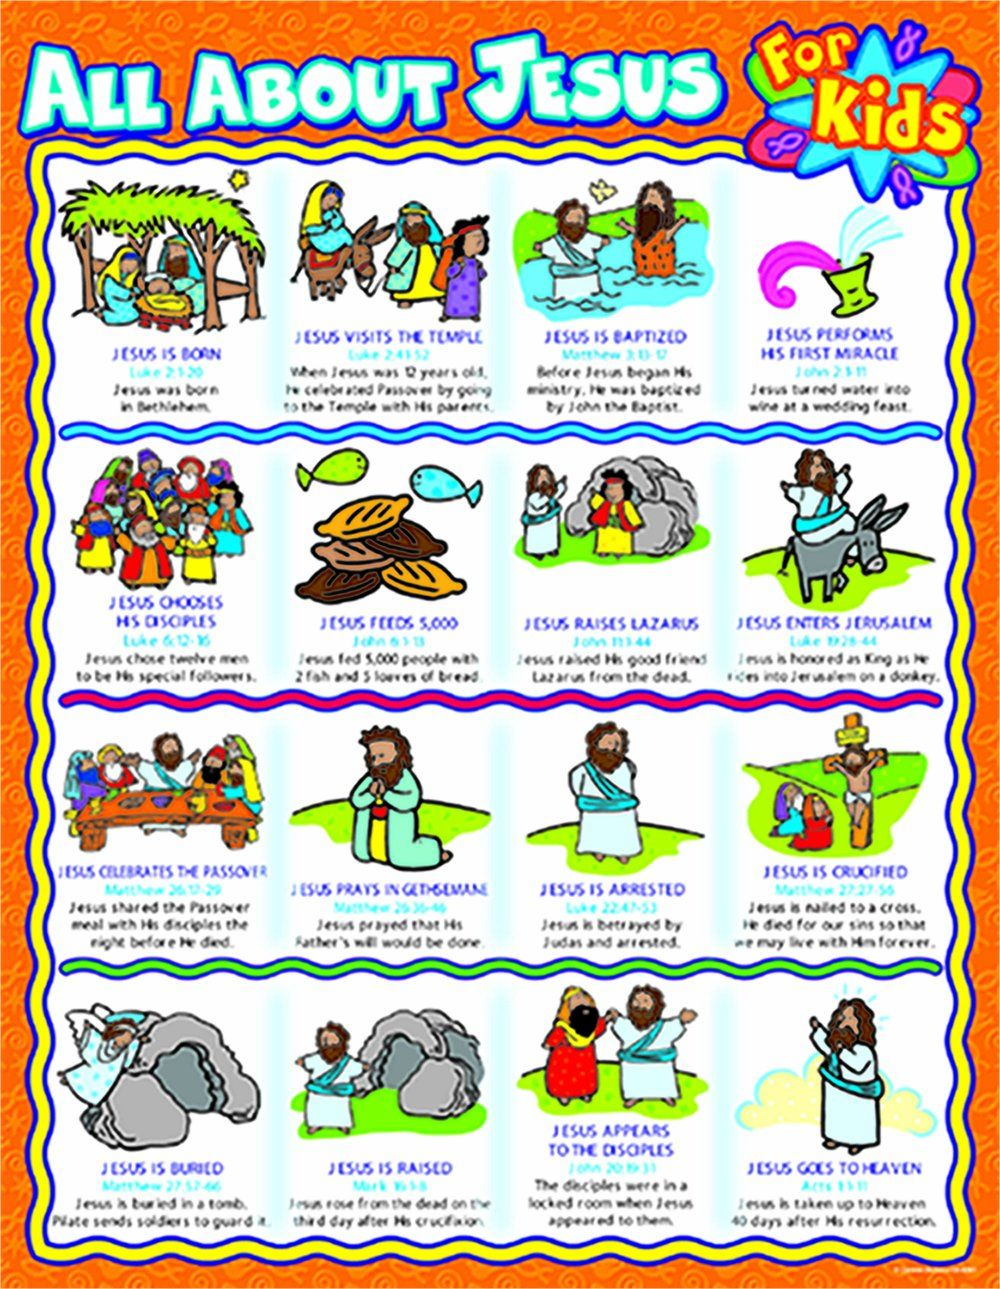 All about Jesus for Kids Chart Timeline of Jesus' Life   Bible ...